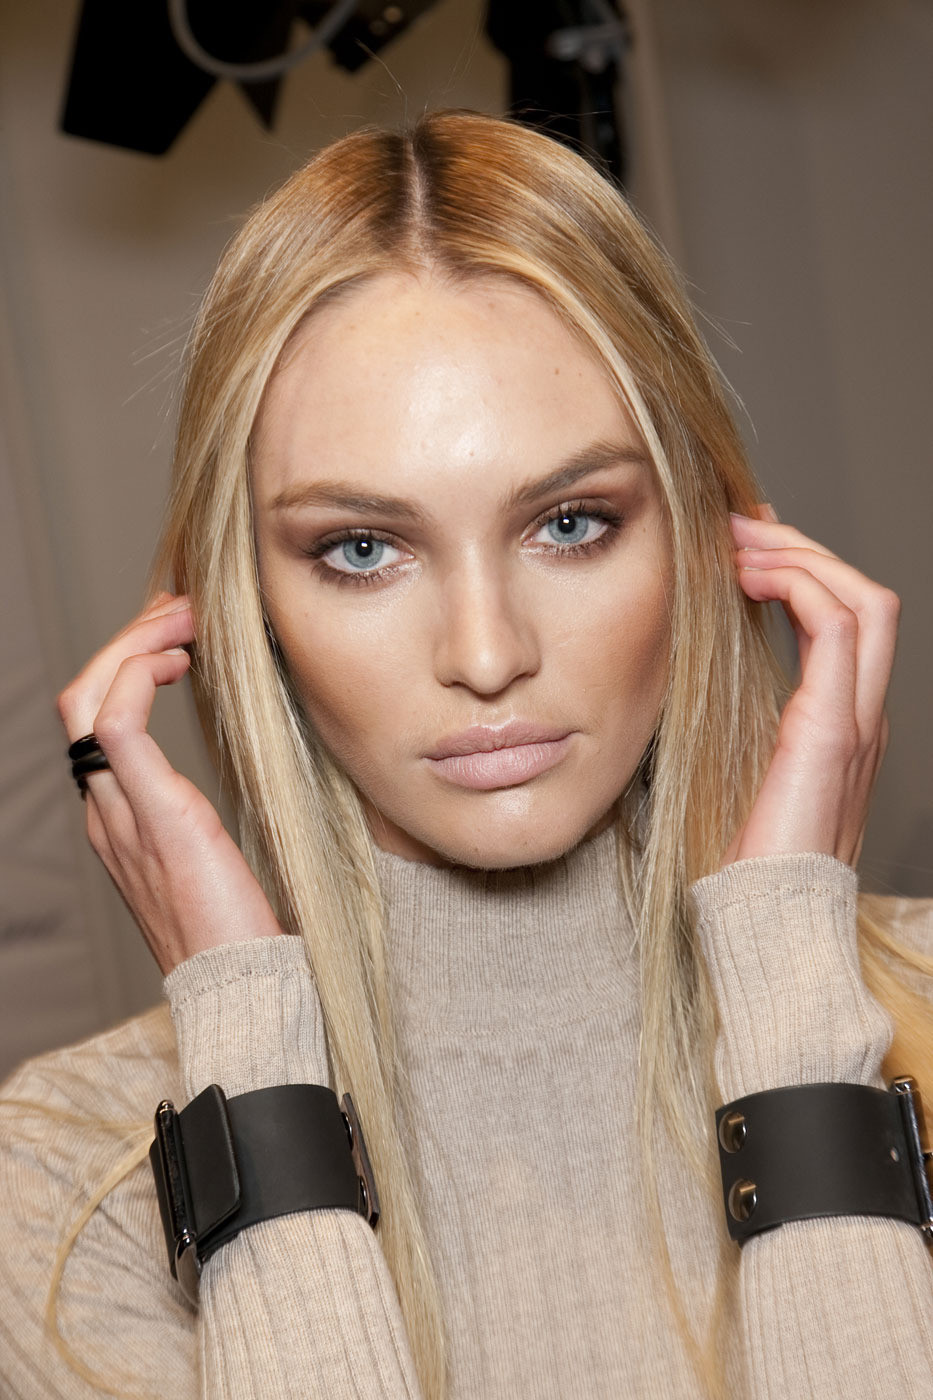 Makeup Show: Models Inspiration: Candice Swanepoel Backstage Fashion